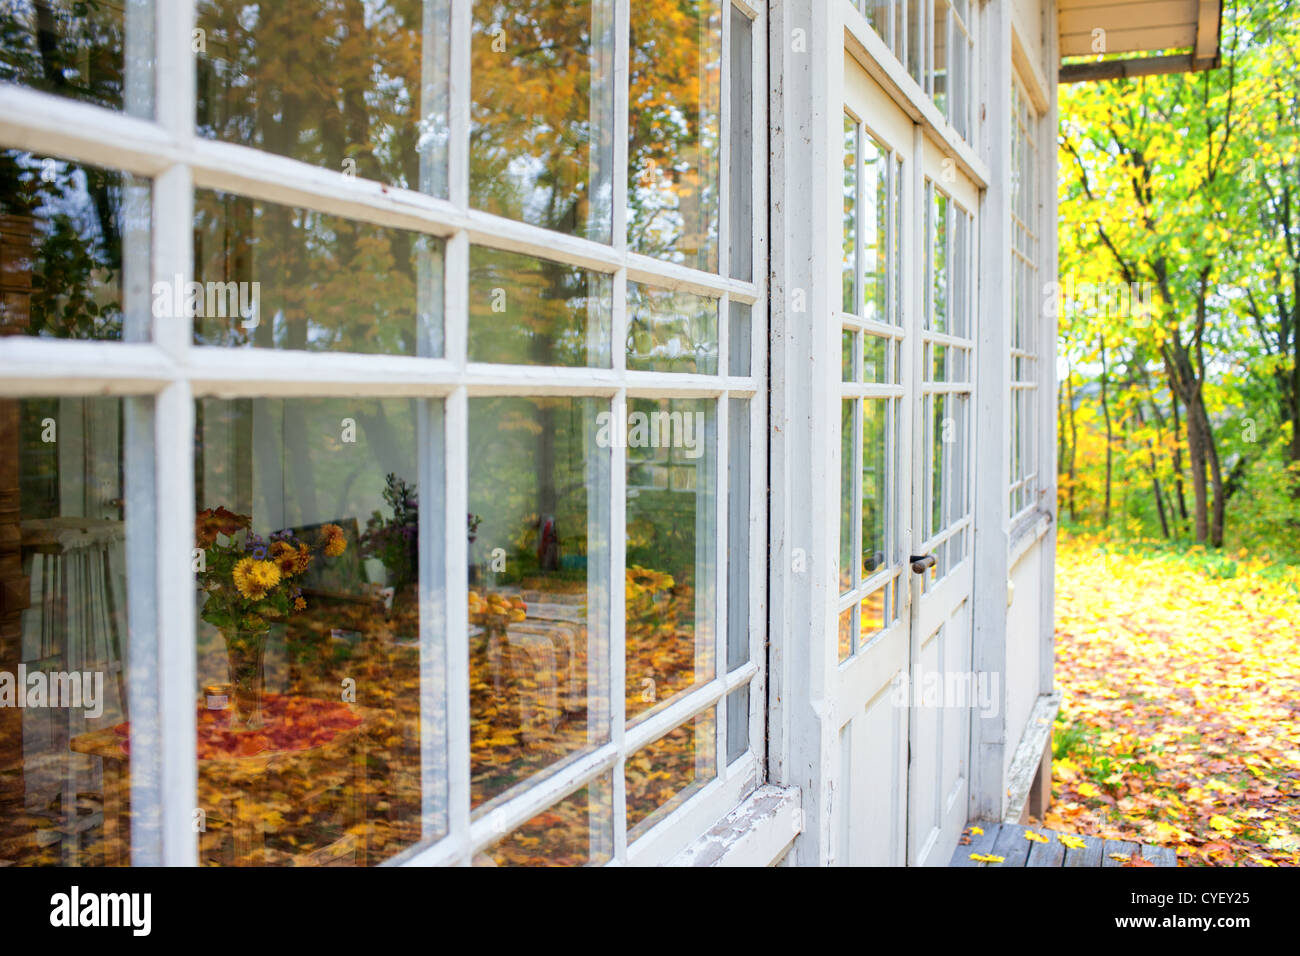 Glass Veranda Old Wooden House In The Late Autumn